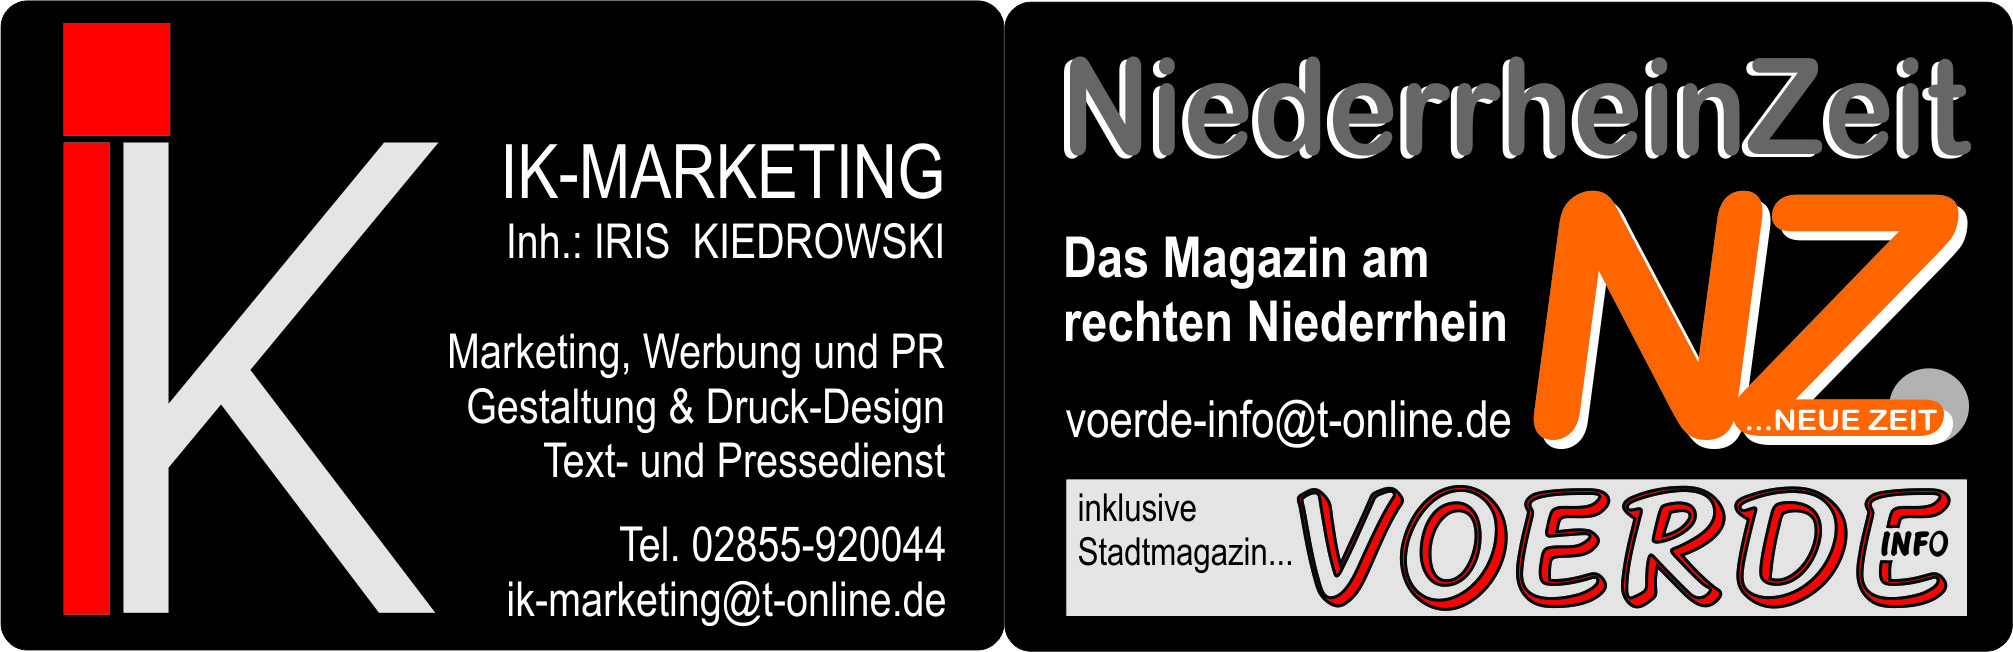 IK-Marketing